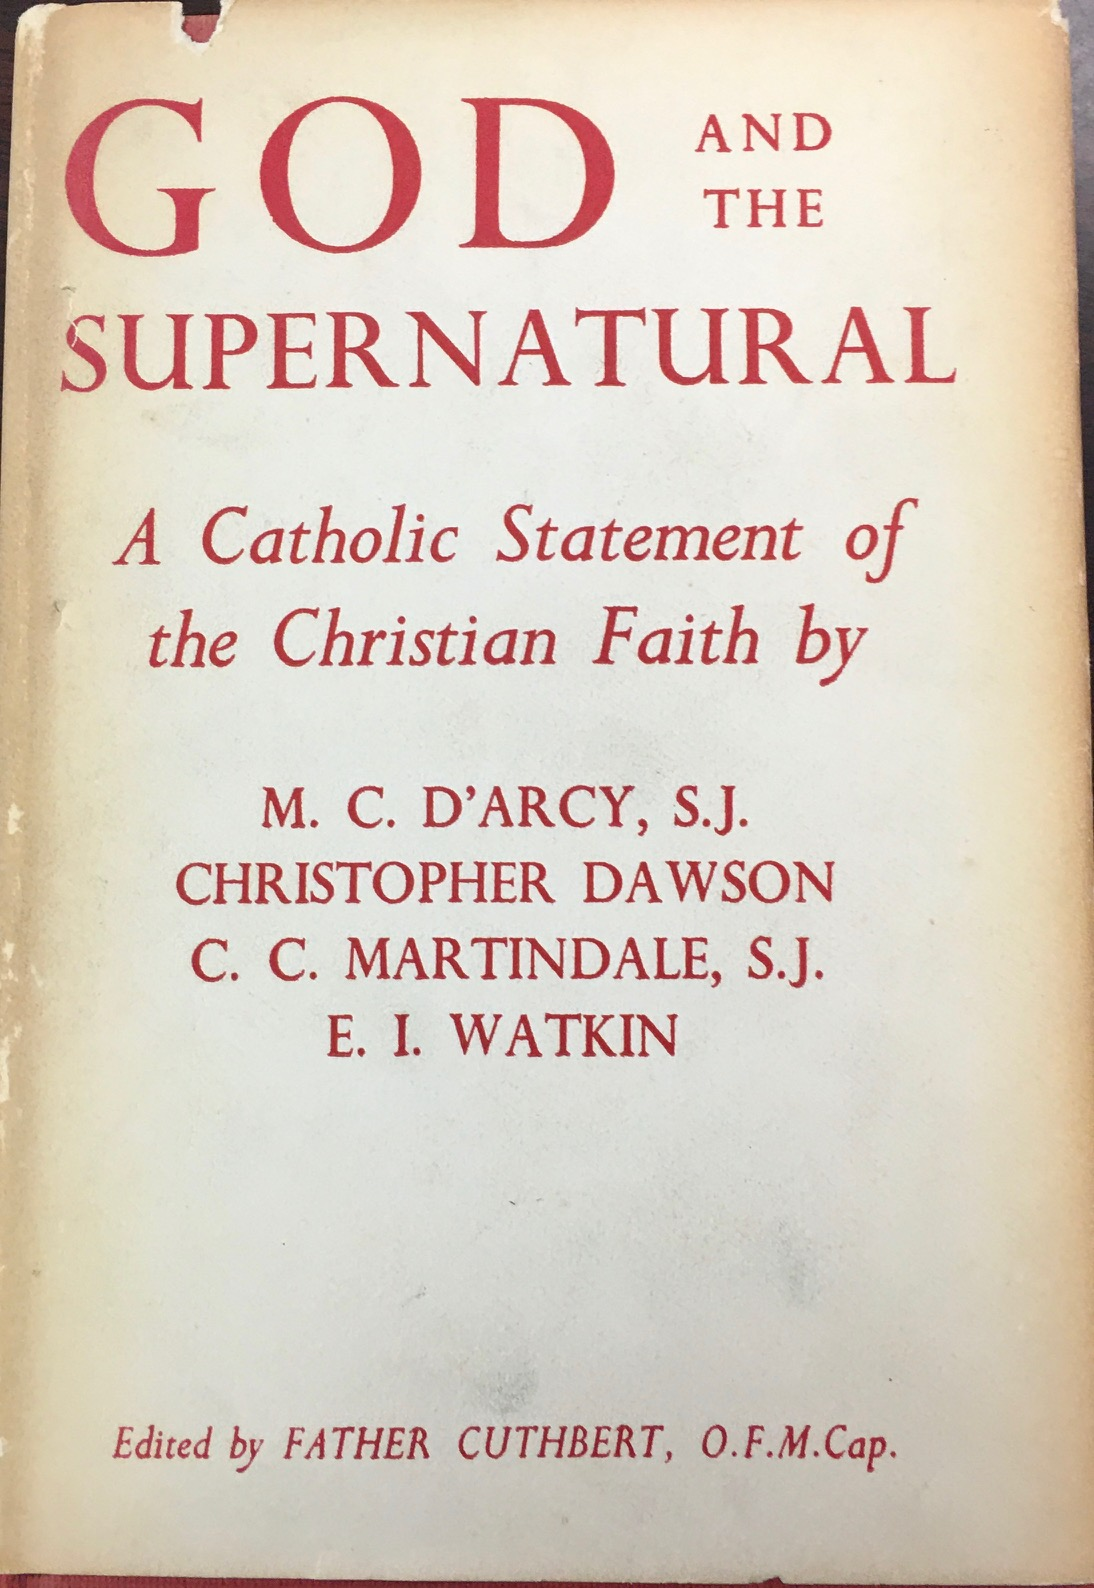 Image for God and the Supernatural: A Catholic Statement of the Christian Faith (Abridged Edition)